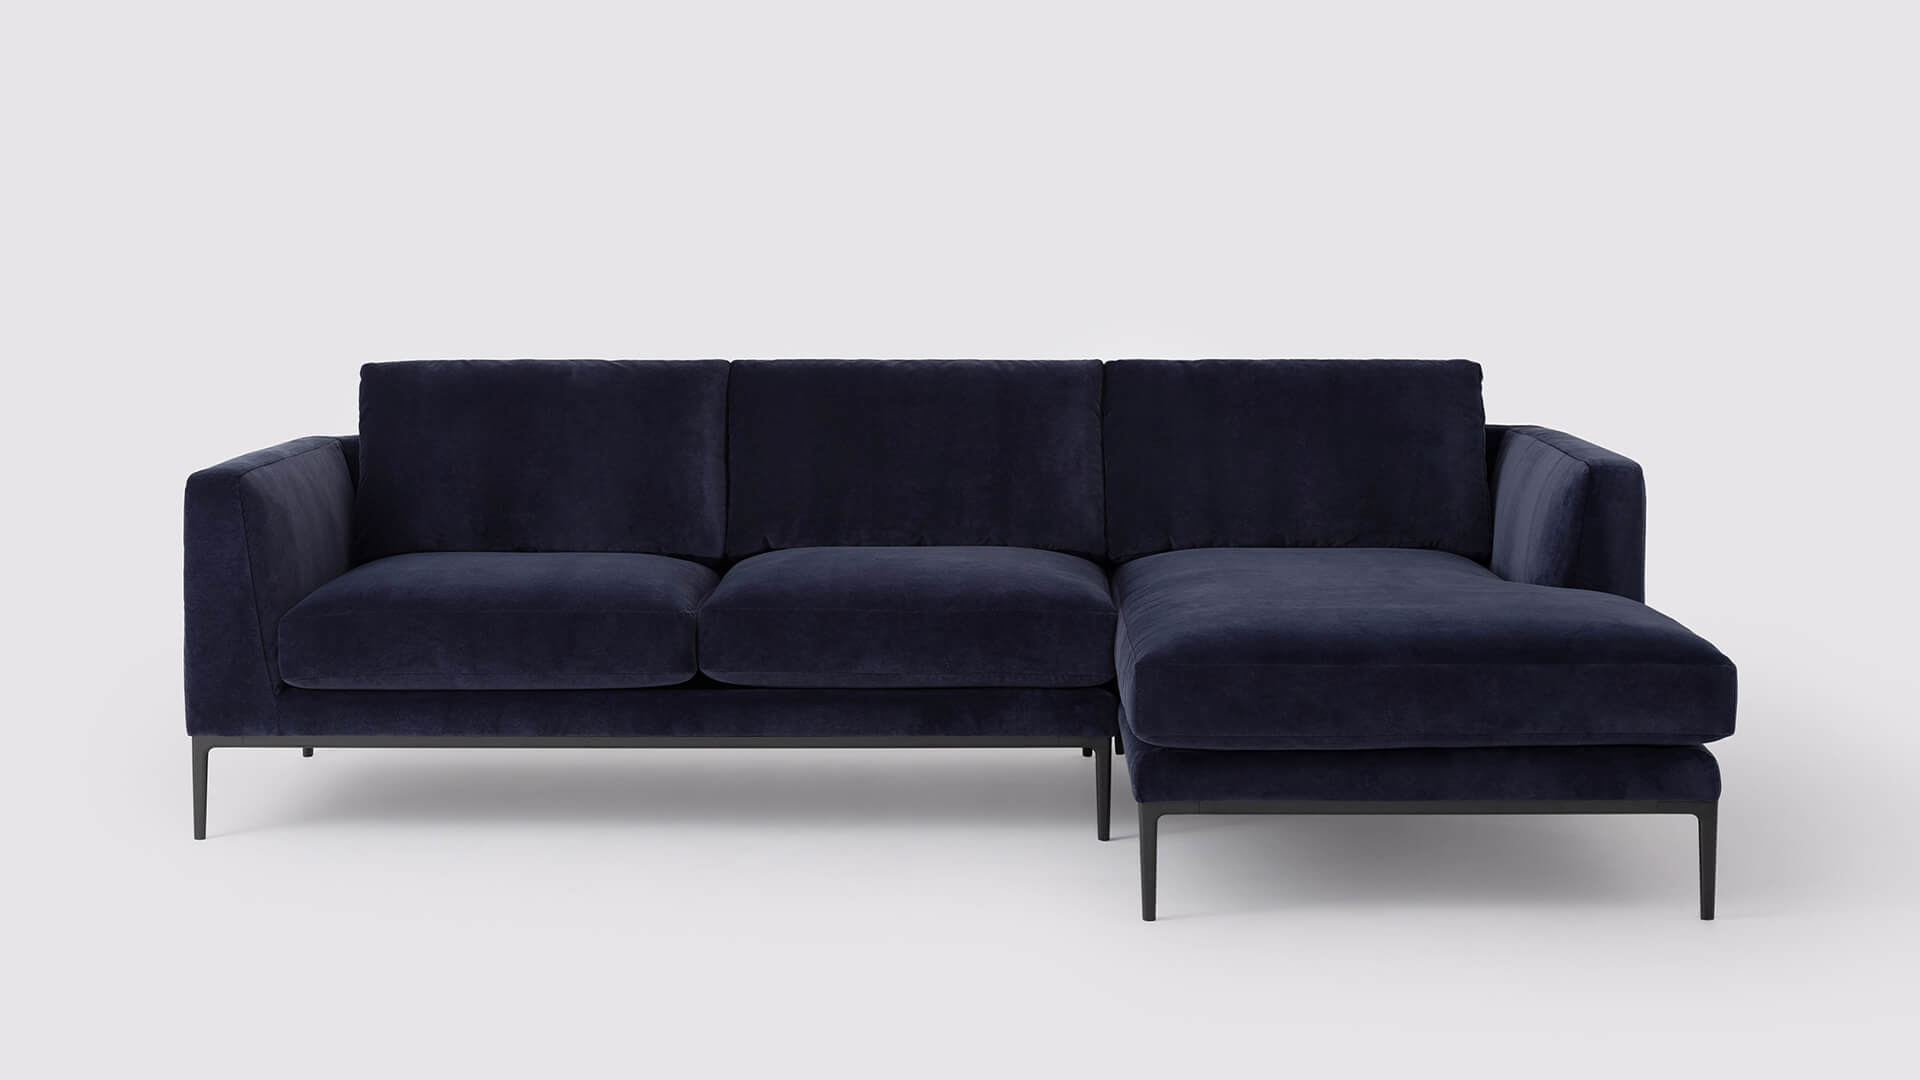 oma 2 piece sectional sofa with chaise